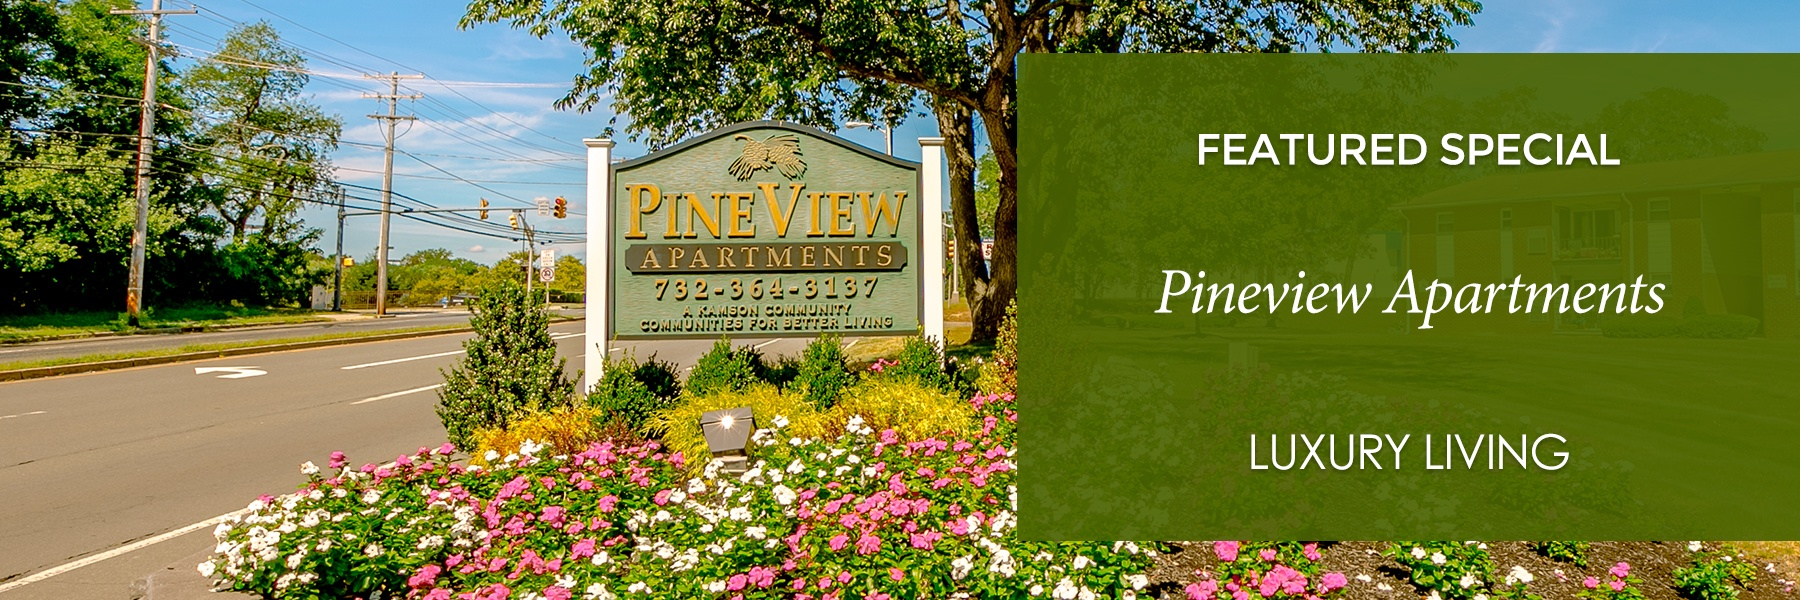 Pineview Apartments For Rent in Jackson, NJ Specials